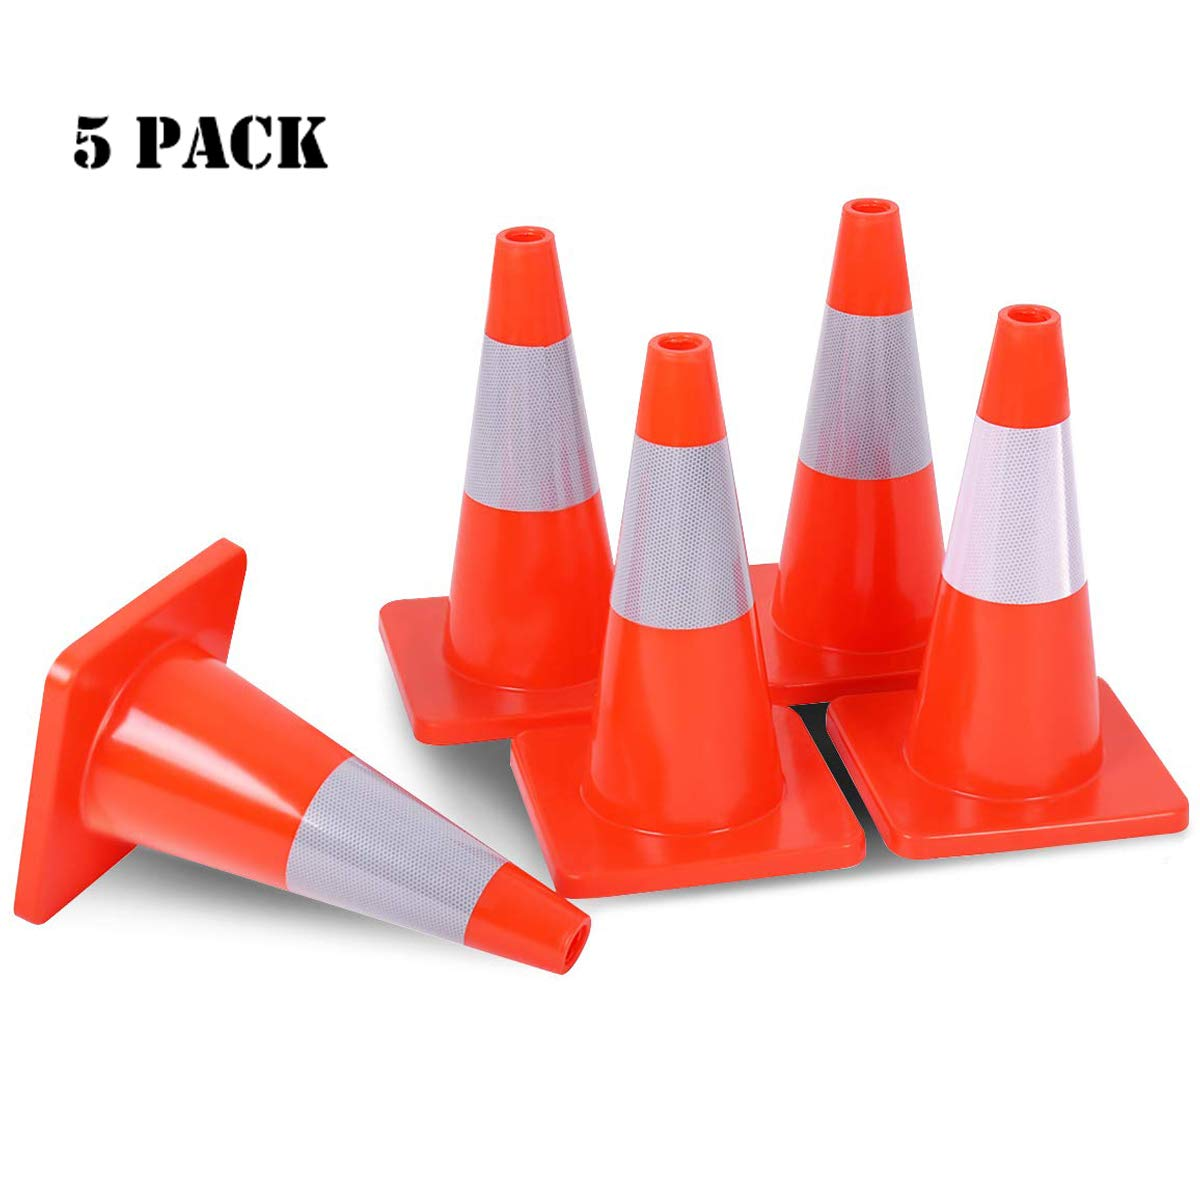 Goplus 5PCS Traffic Cones 18'' PVC Safety Road Parking Cones Driving Construction Cones Orange with 6'' Reflective Strips Collar